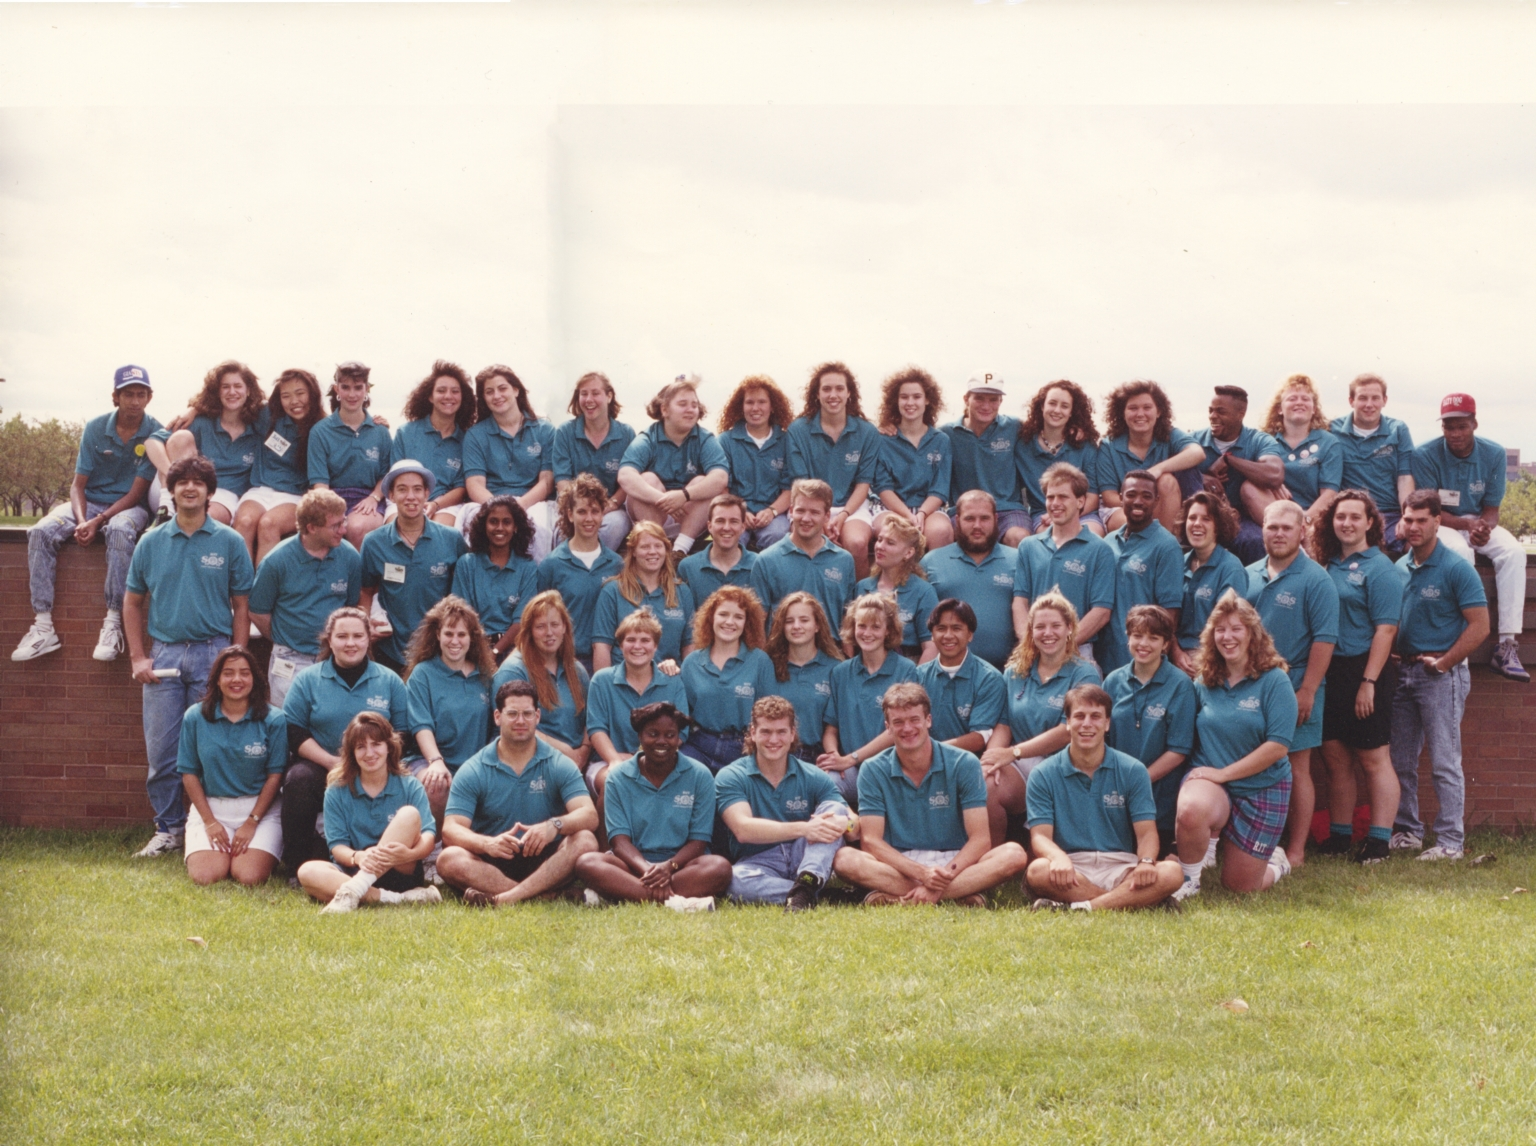 1993 Student Orientation Services Leaders